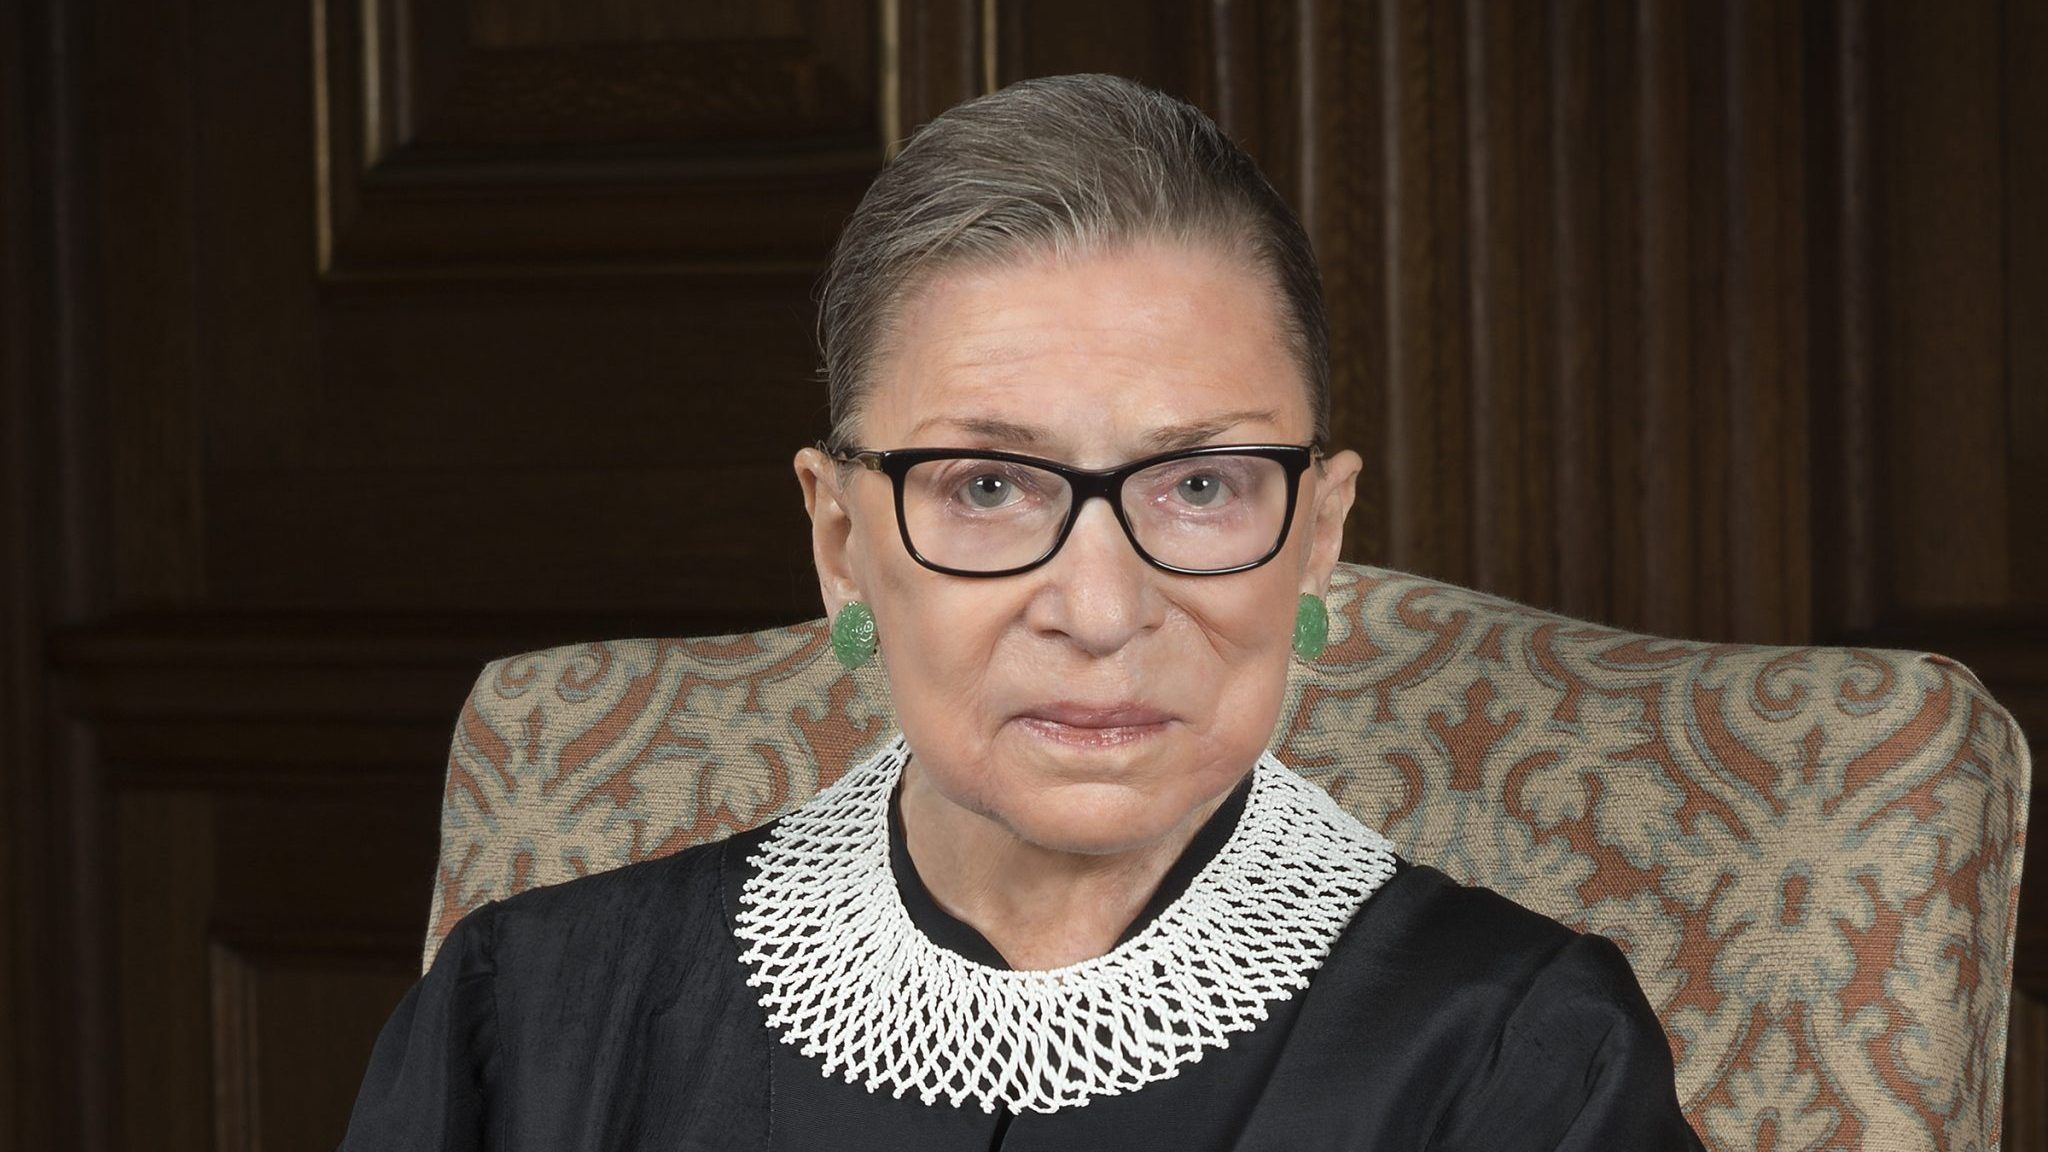 U.S. Supreme Court Justice Ruth Bader Ginsburg, seated in her robe, 2016 portrait